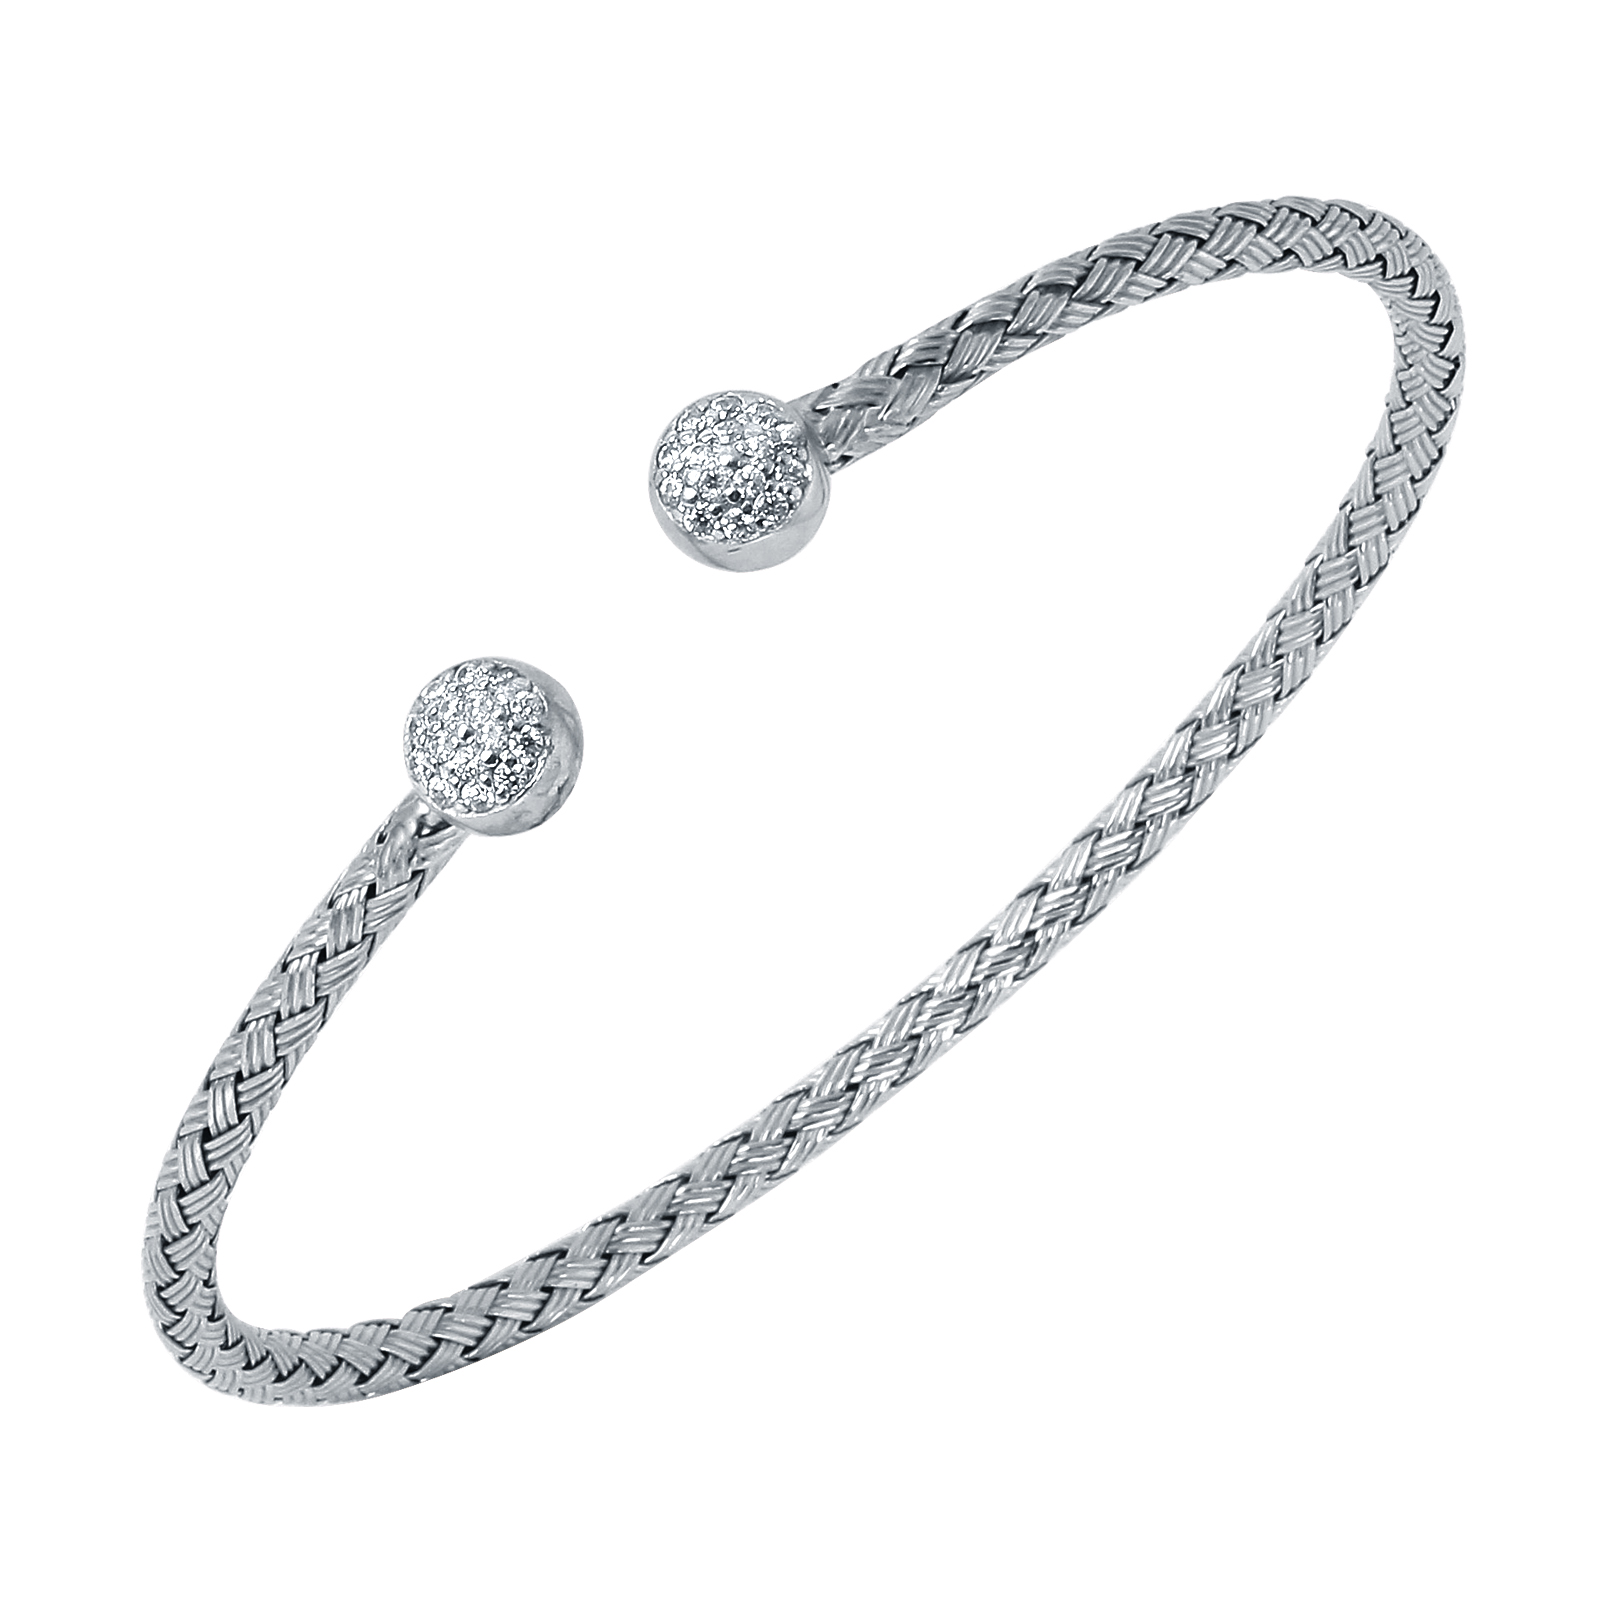 CHARLES GARNIER - Sterling Silver and CZ Cap Cuff Bangle